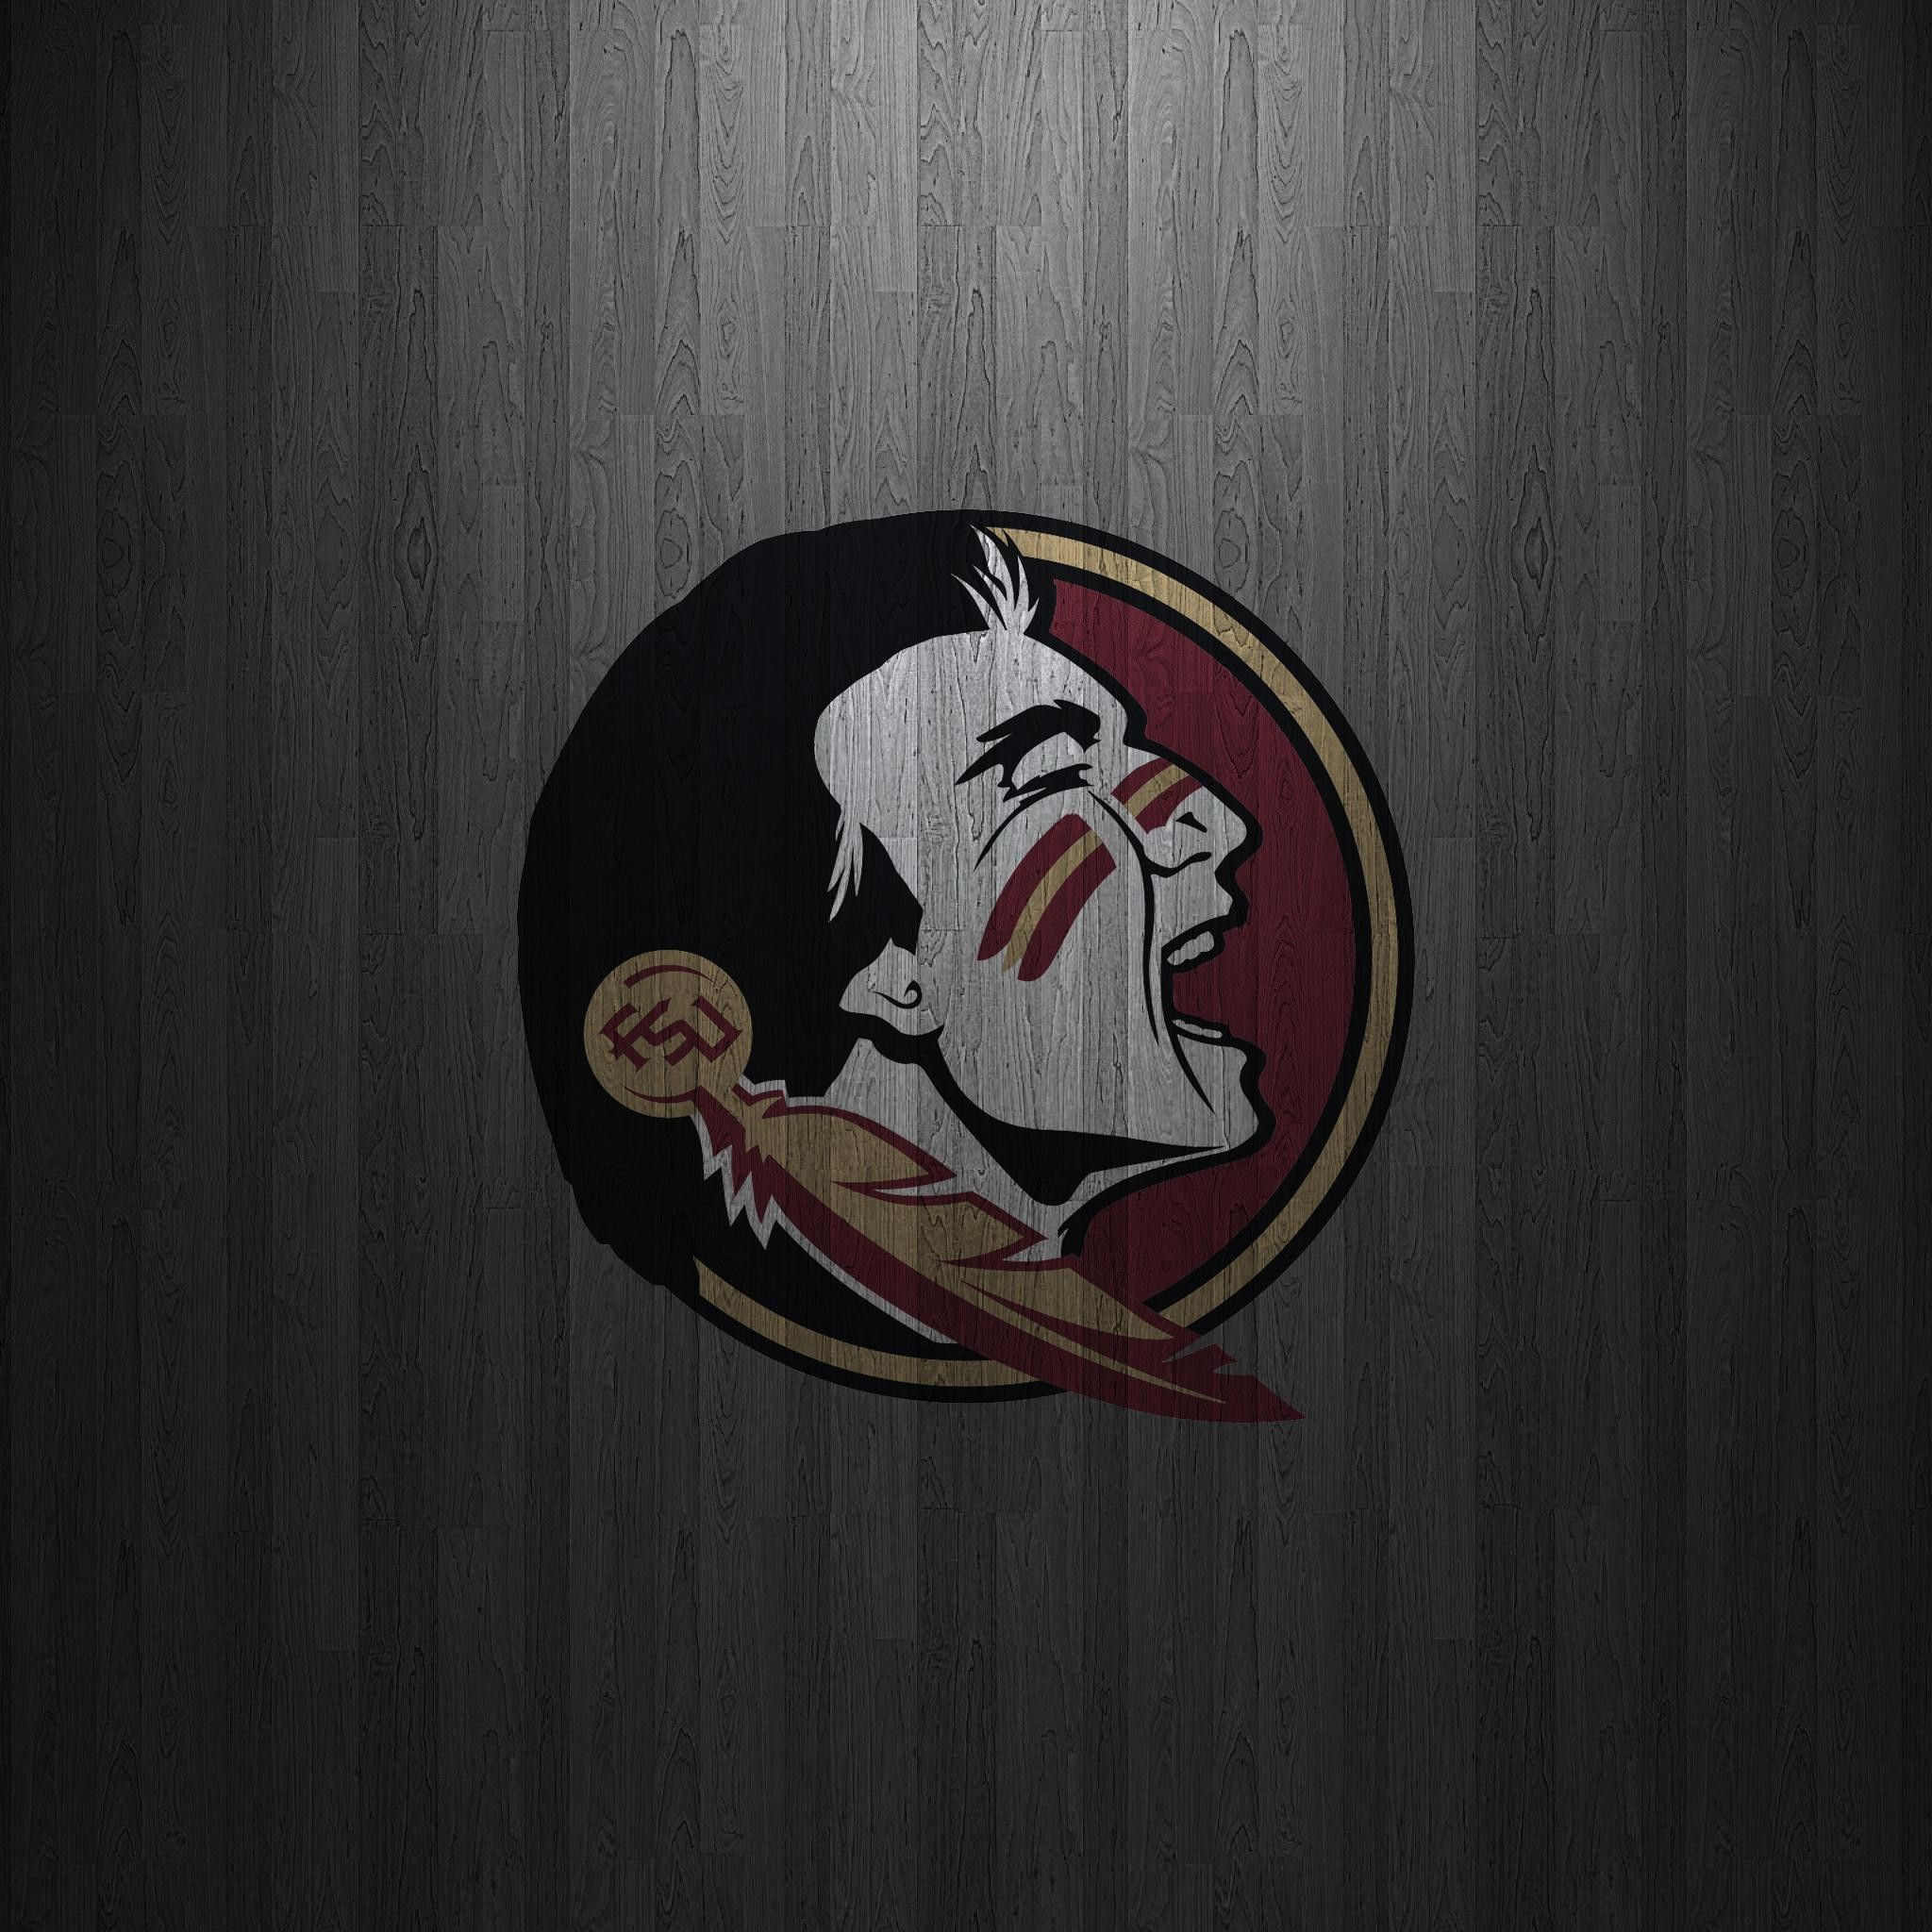 Fsu Football Wallpaper: Florida State University Wallpapers (66+ Background Pictures